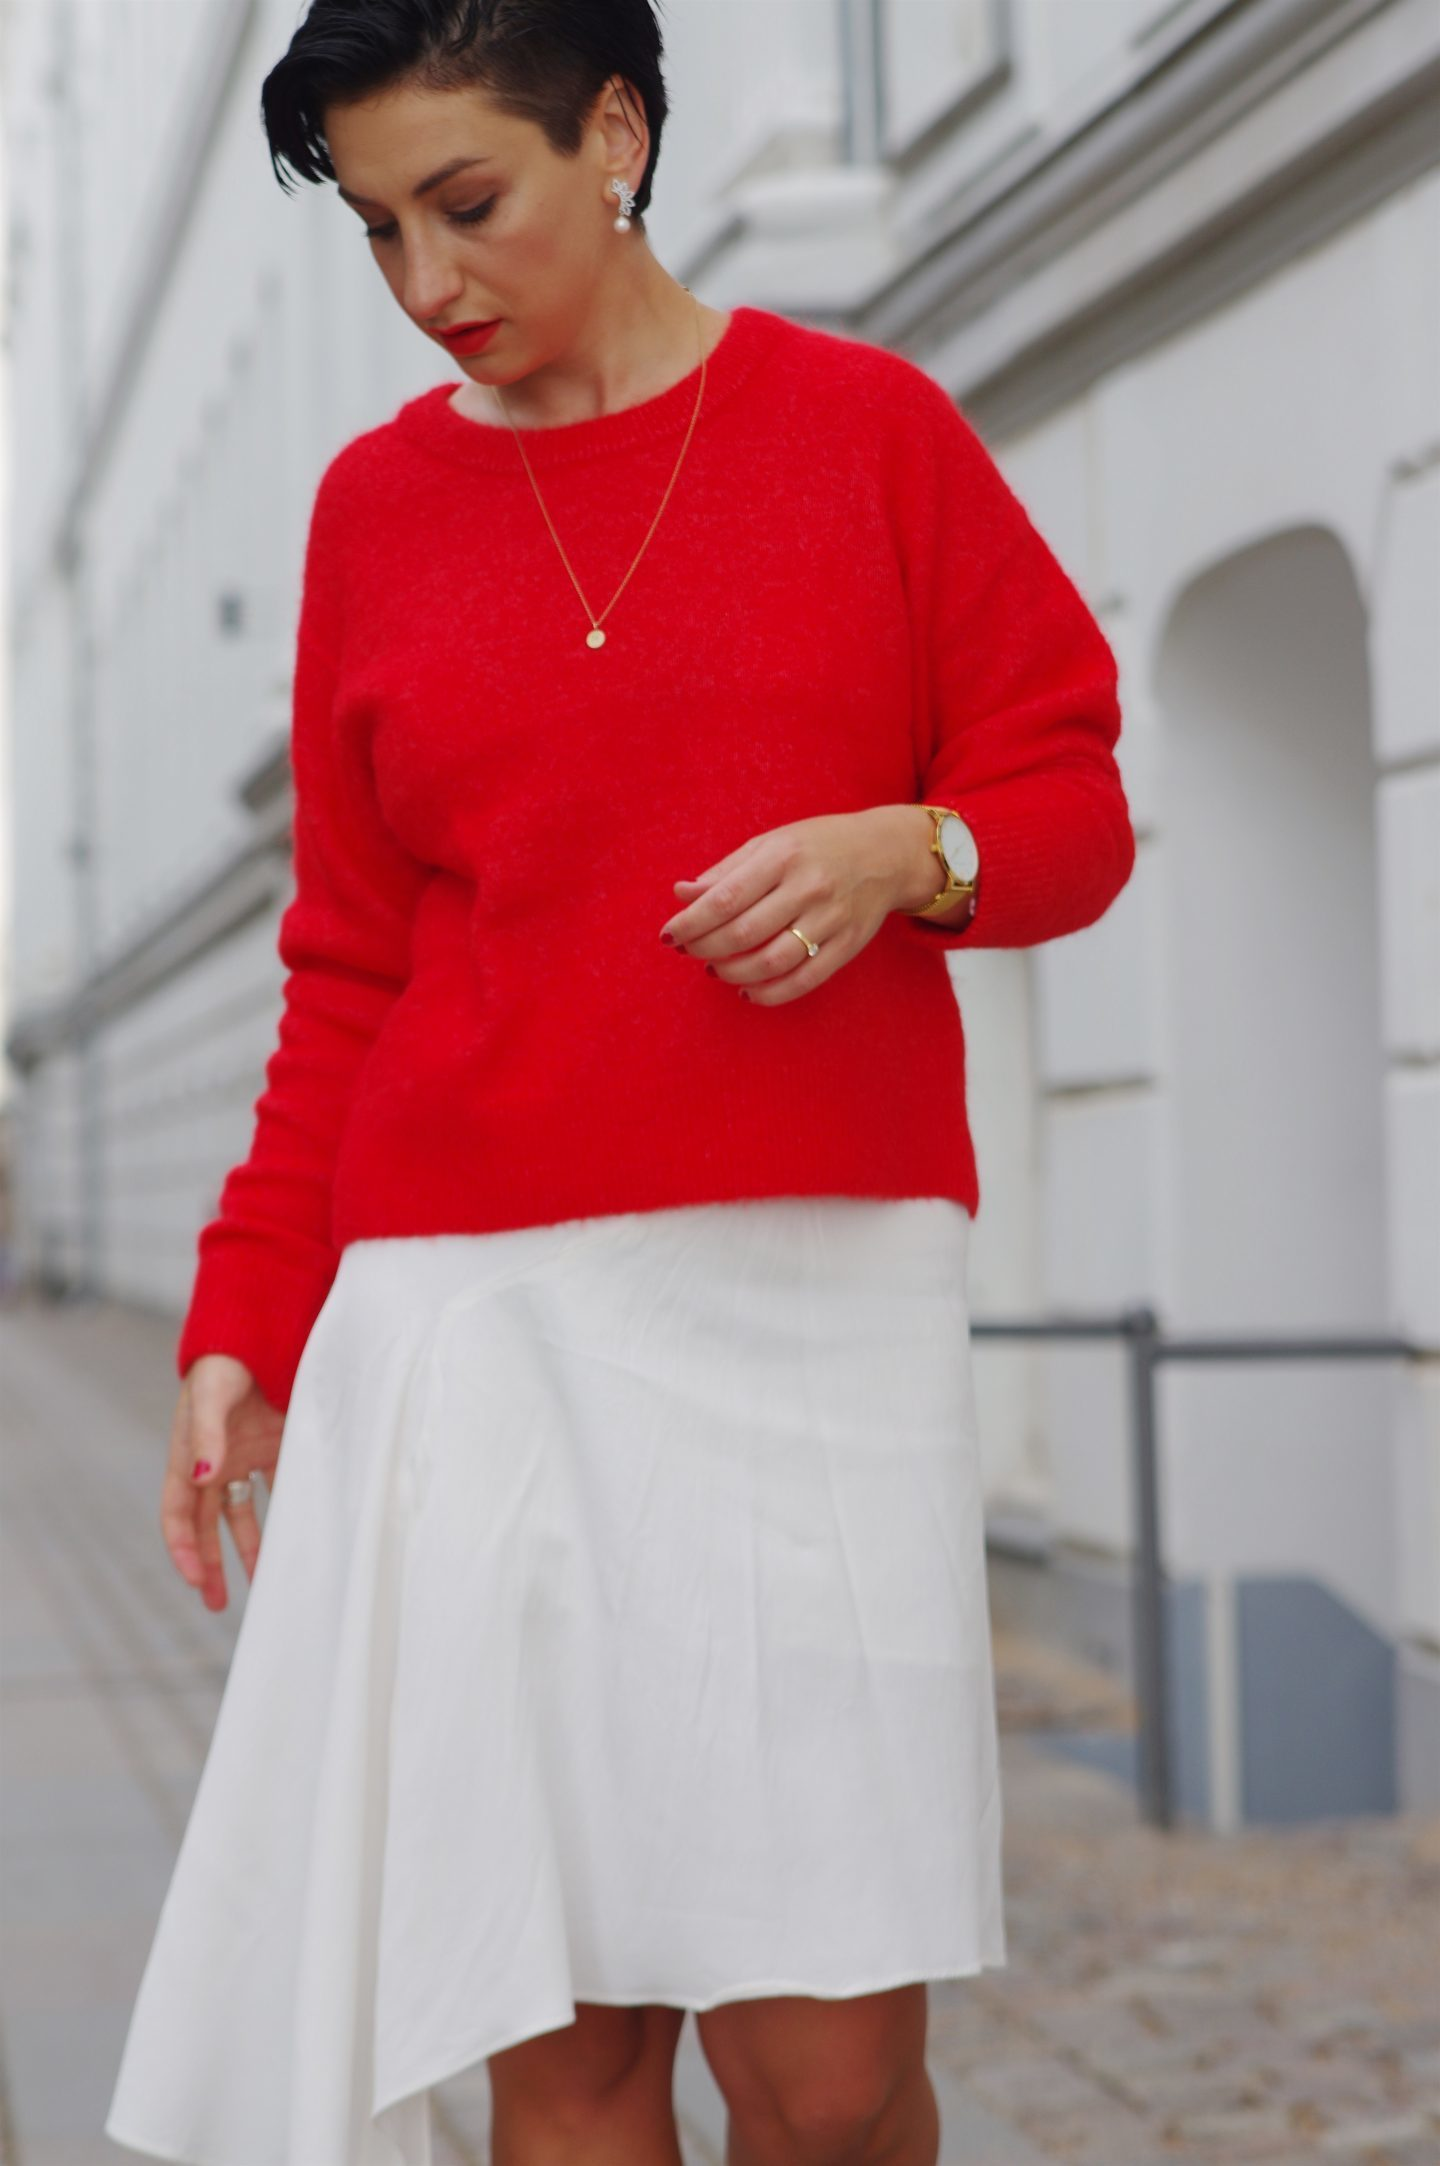 Red sweater and white skirt scandinavian fashion